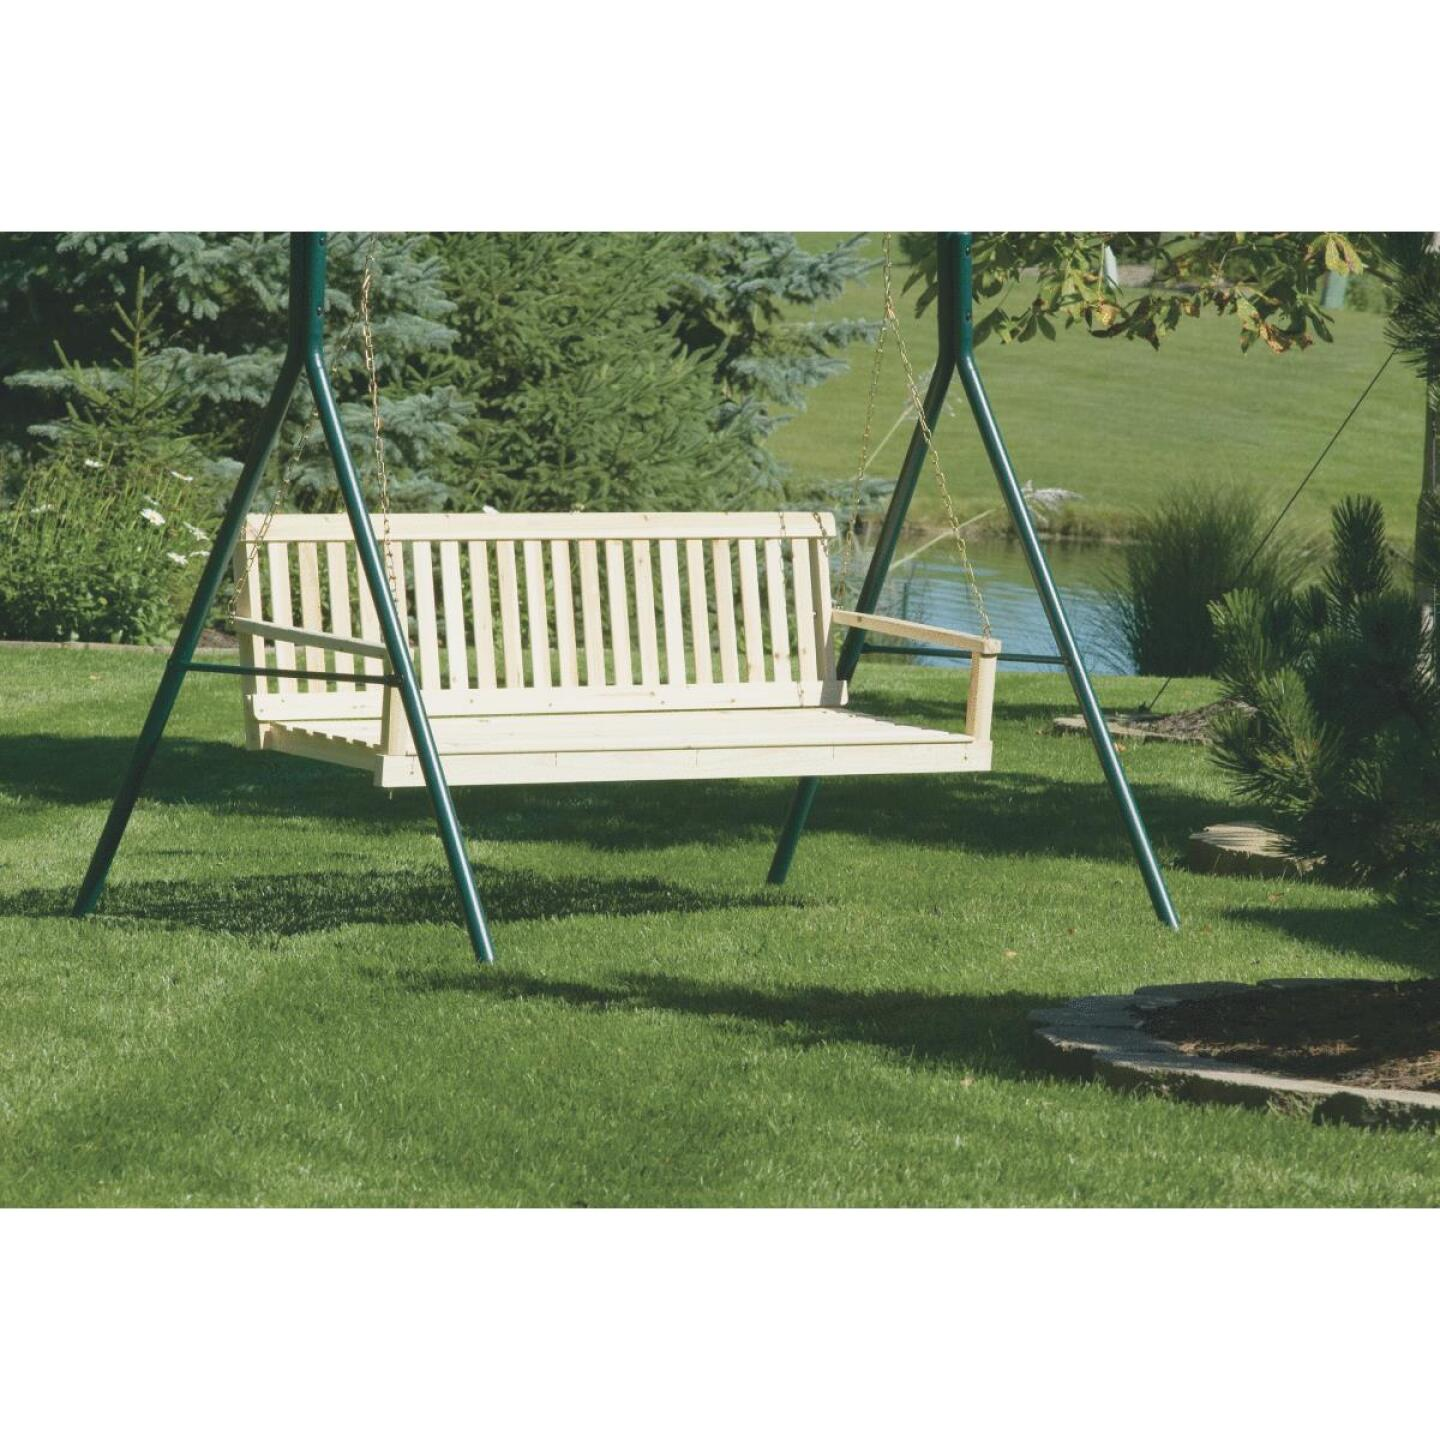 Jack Post Jennings 60 In. W. x 17.5 In. H. x 21-3/4 In. D. Natural Cypress Porch Swing Image 2